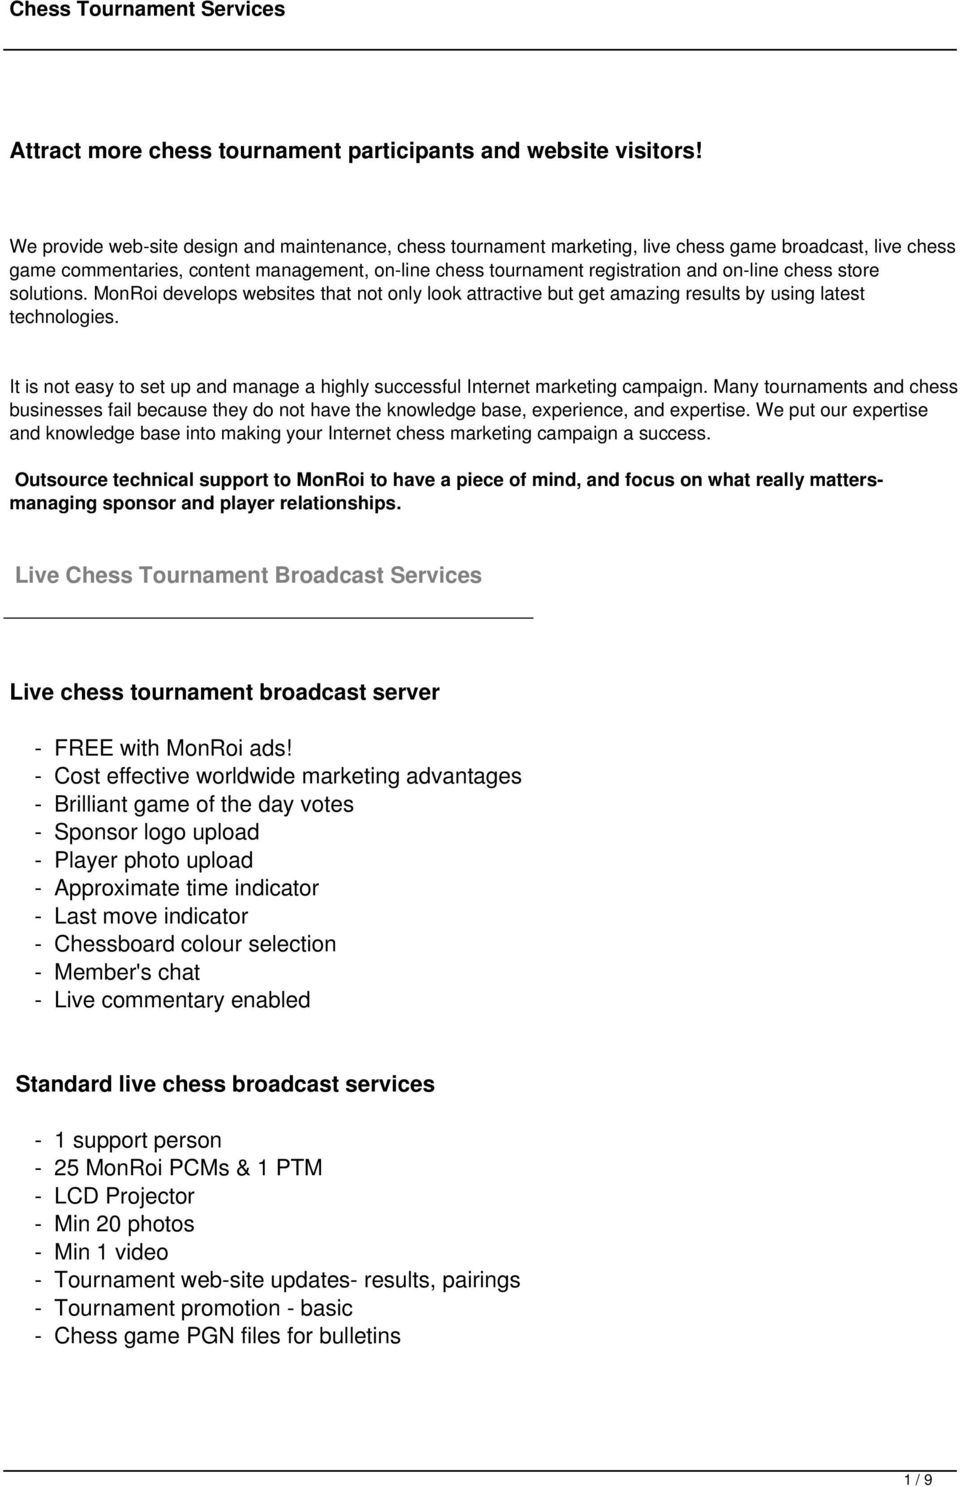 Attract more chess tournament participants and website